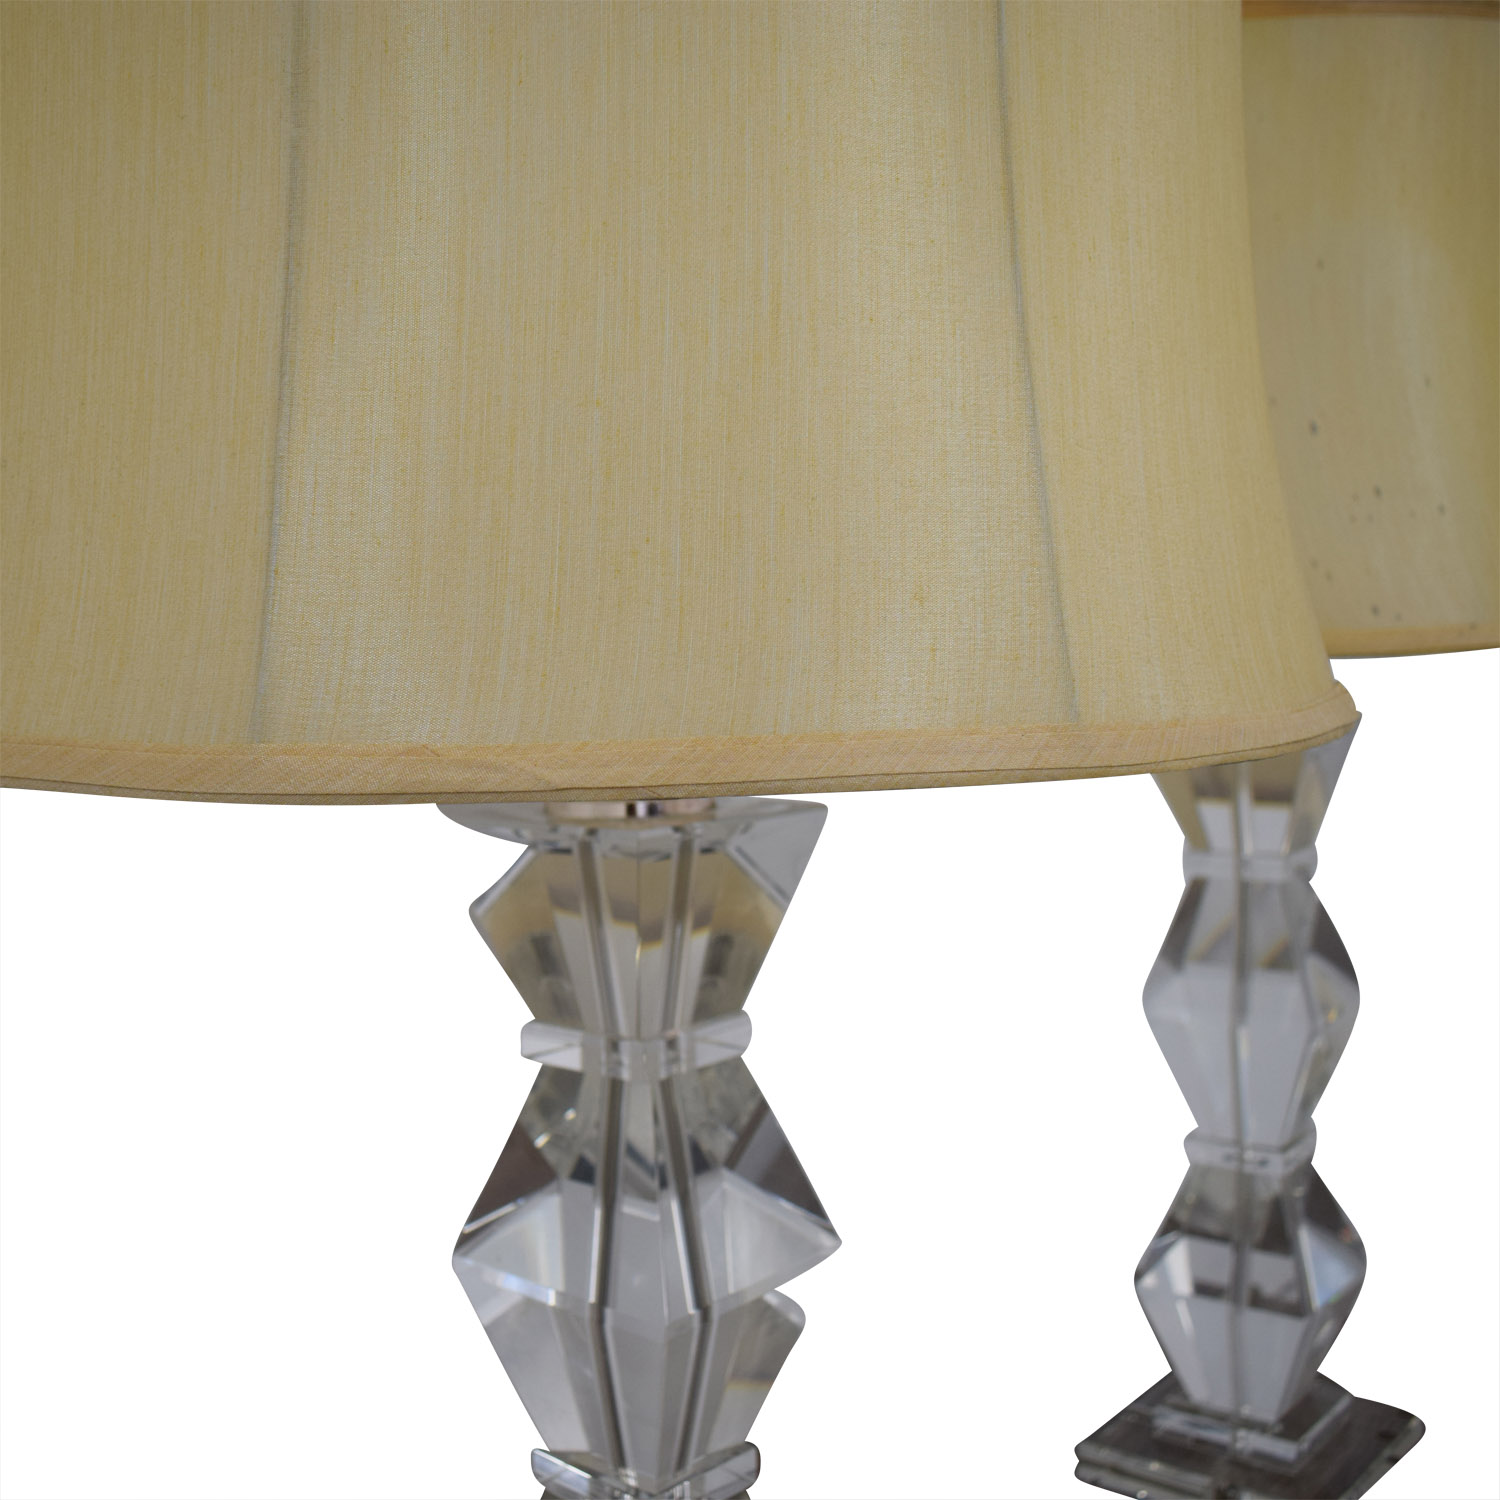 Ethan Allen Ethan Allen Geometric Crystal Table Lamps on sale